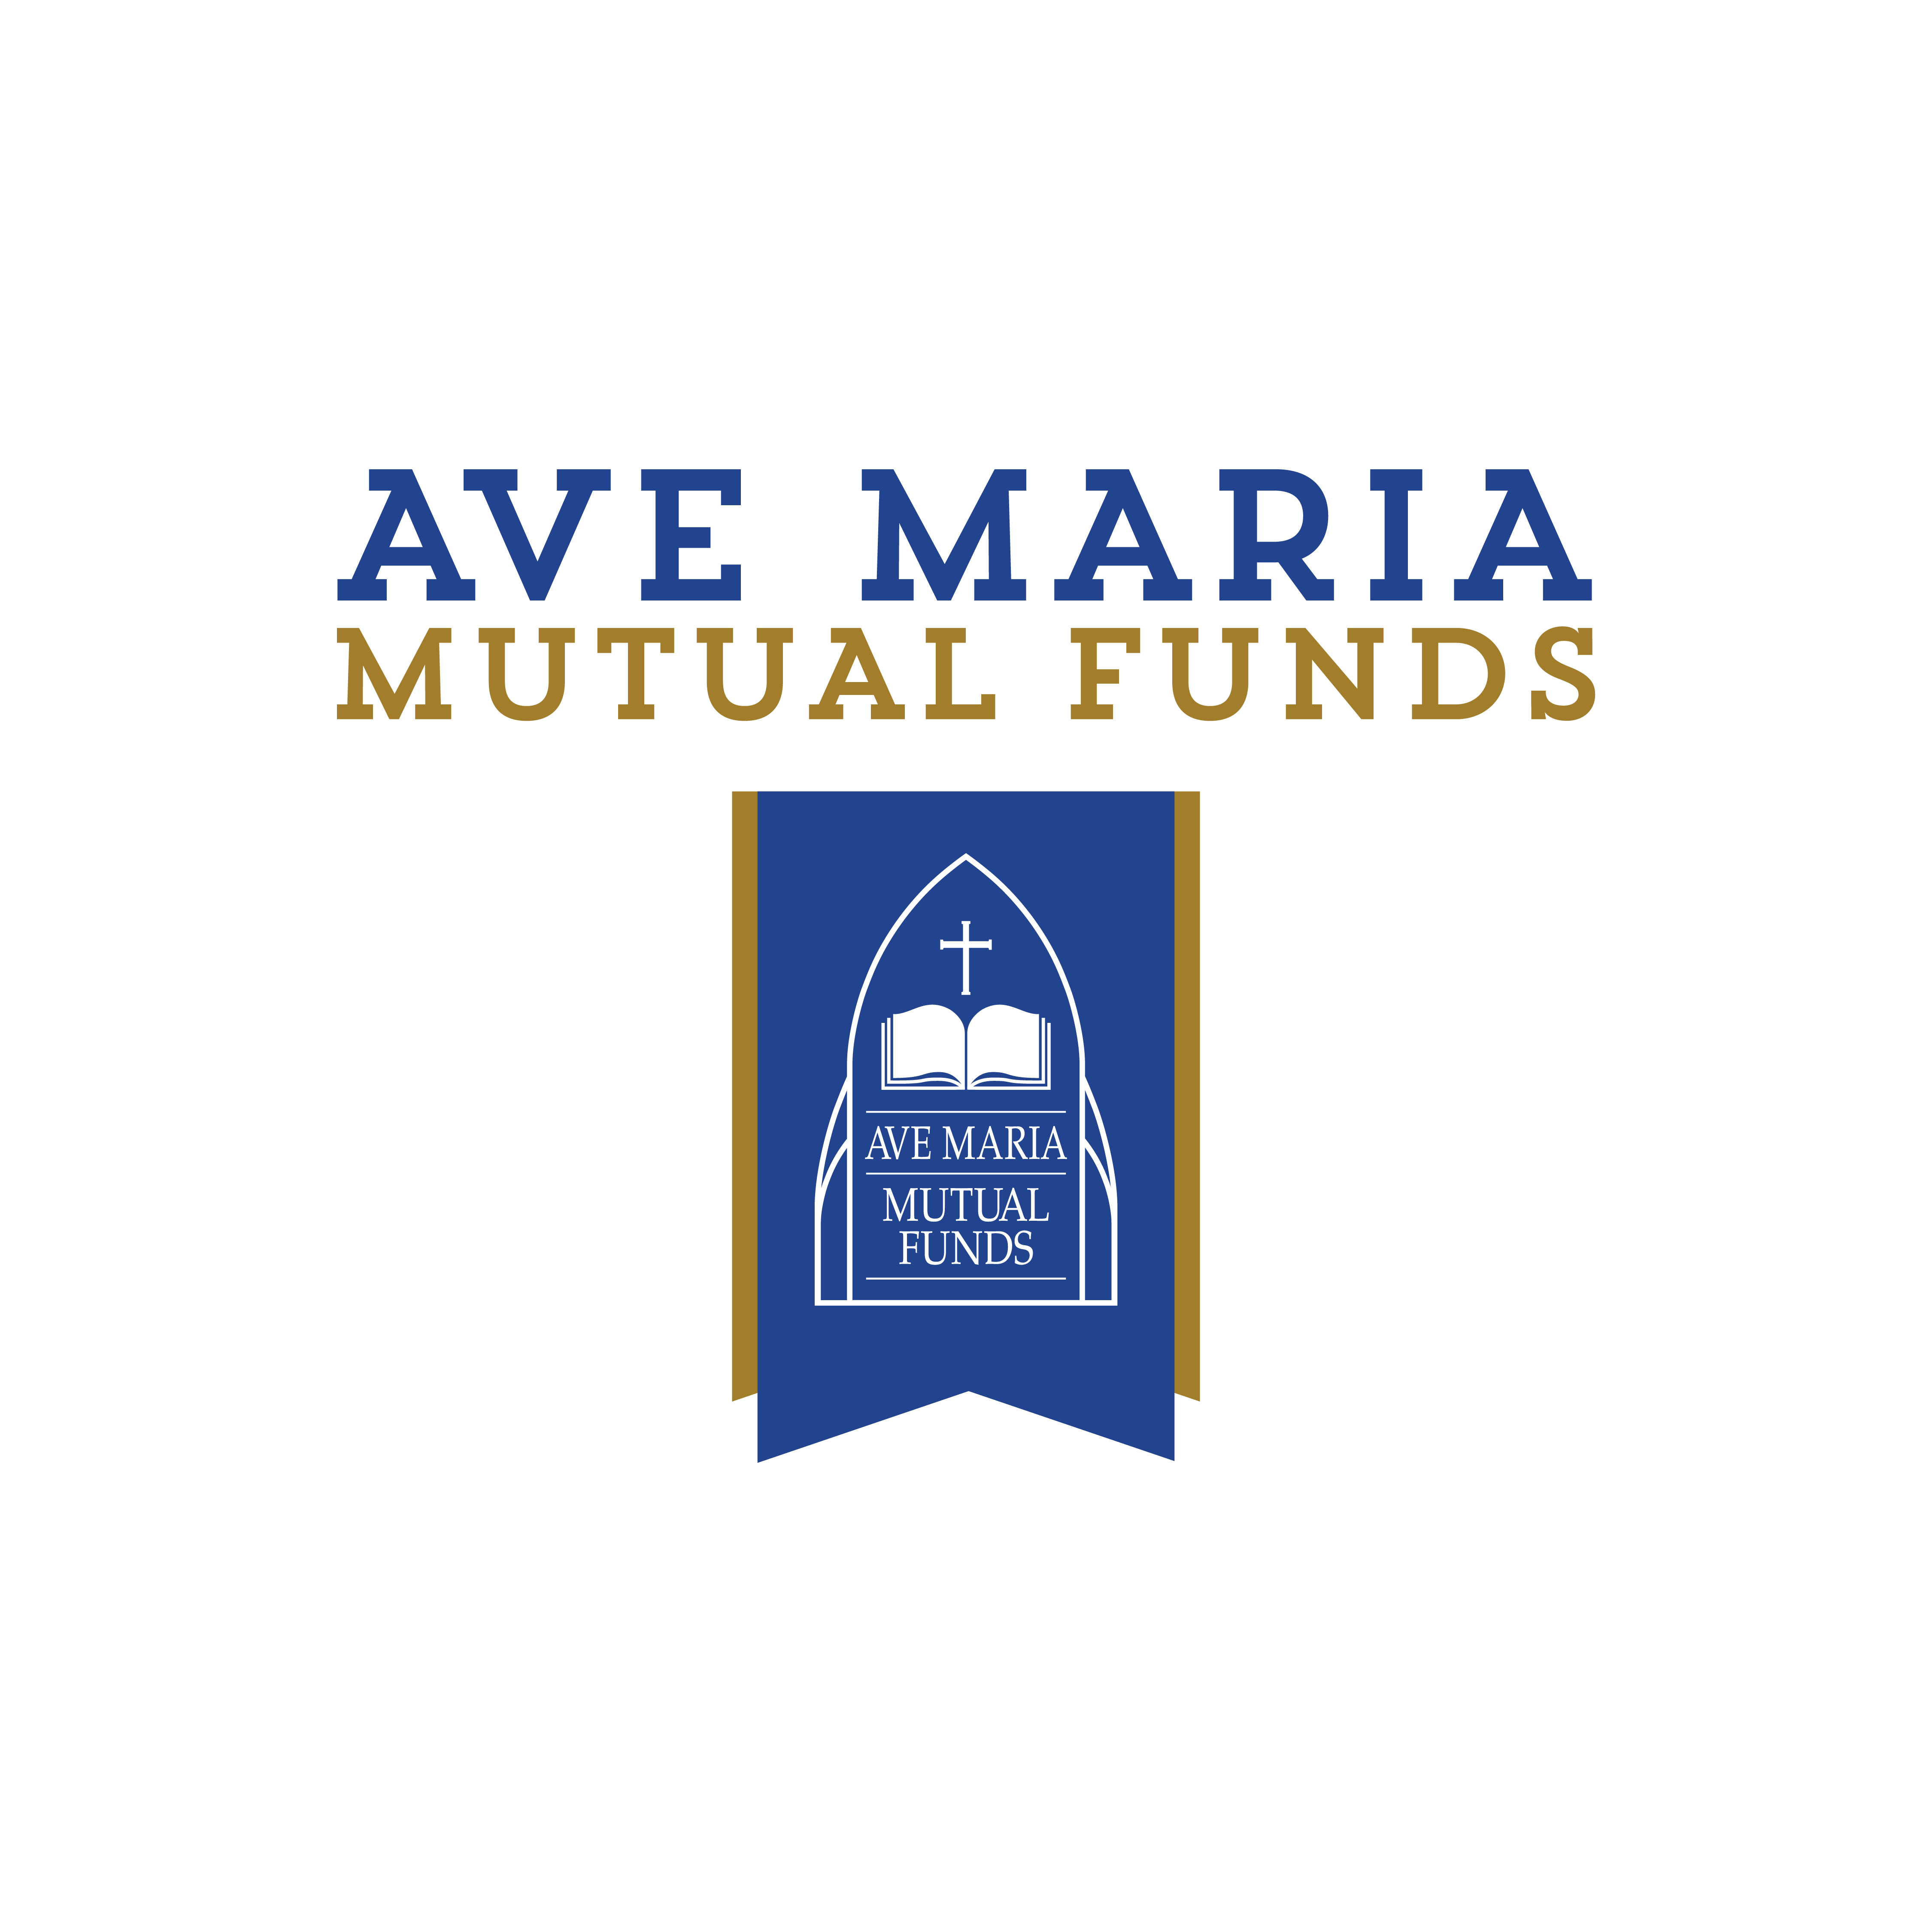 Ave Maria Mutual Funds - Investing With Purpose